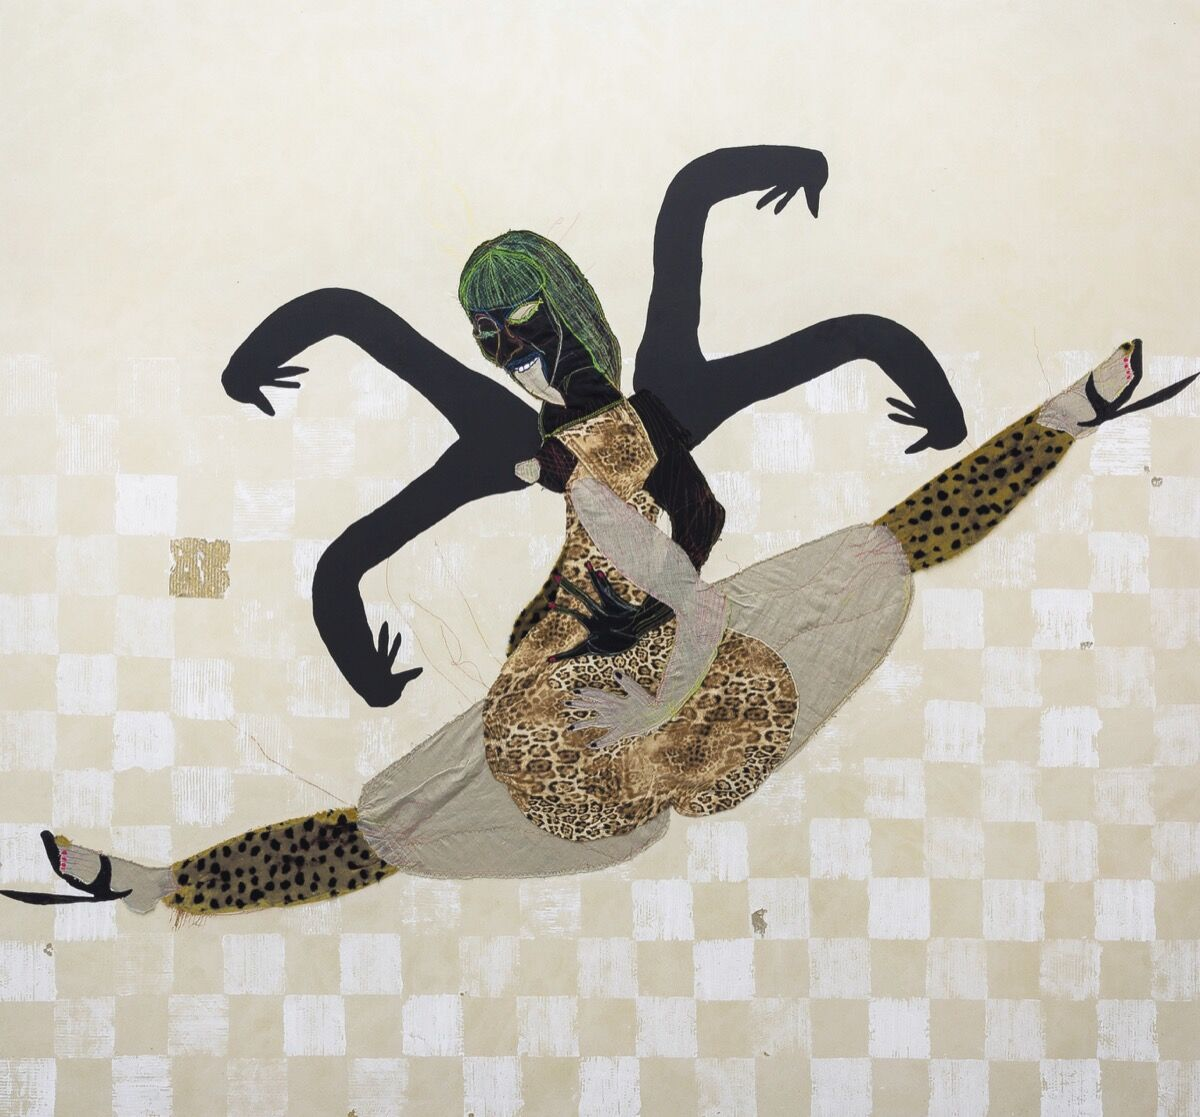 Tschabalala Self, Floor Dance, 2016. Courtesy of Christie's.